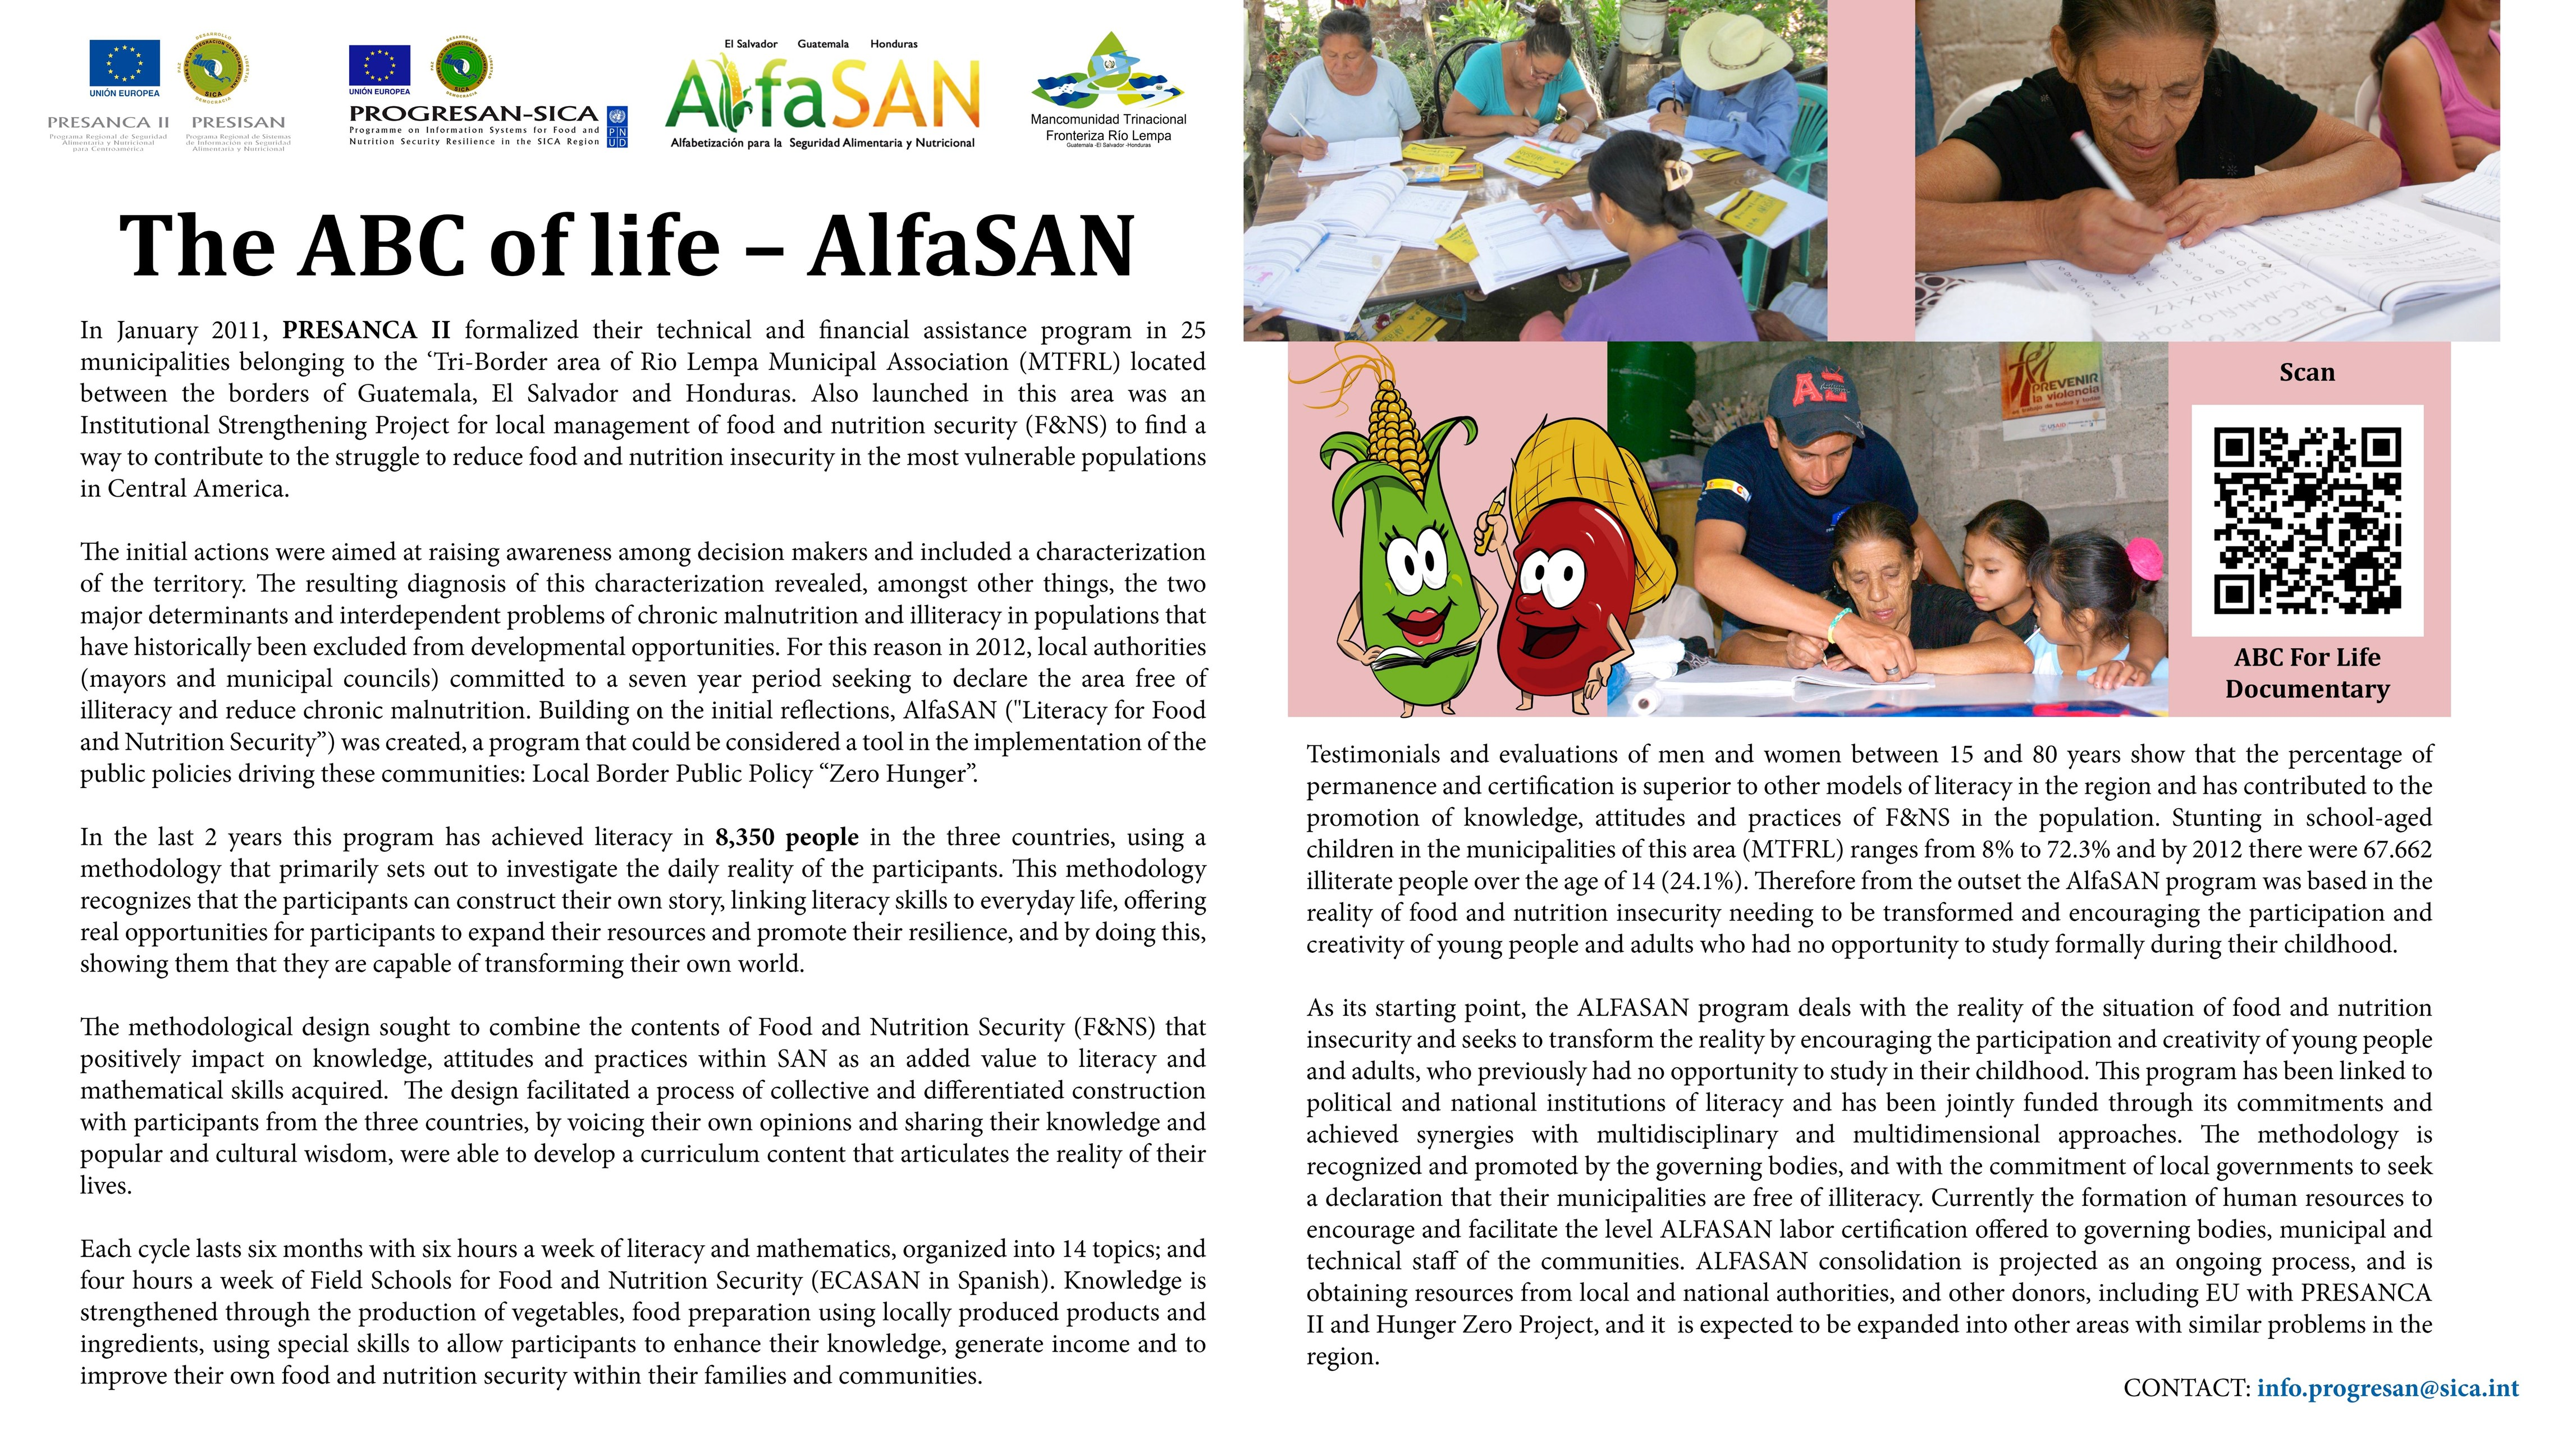 The ABC of Life - AlfaSAN